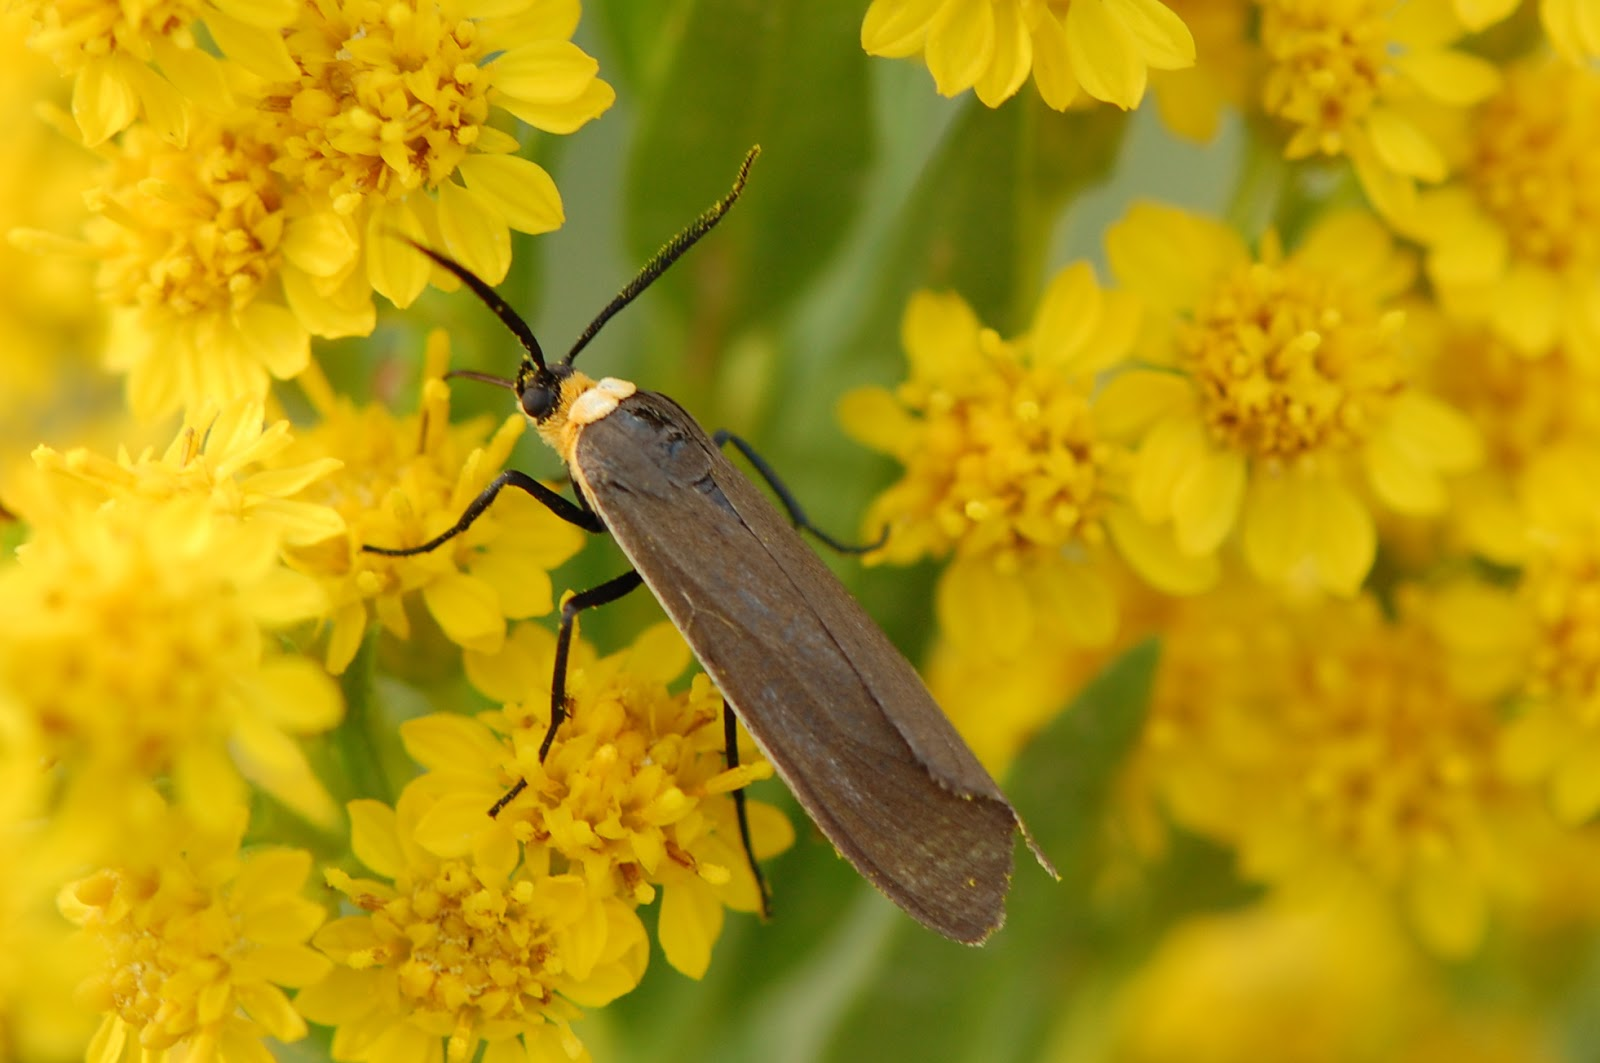 Meet the Yellow-collared Scape Moth